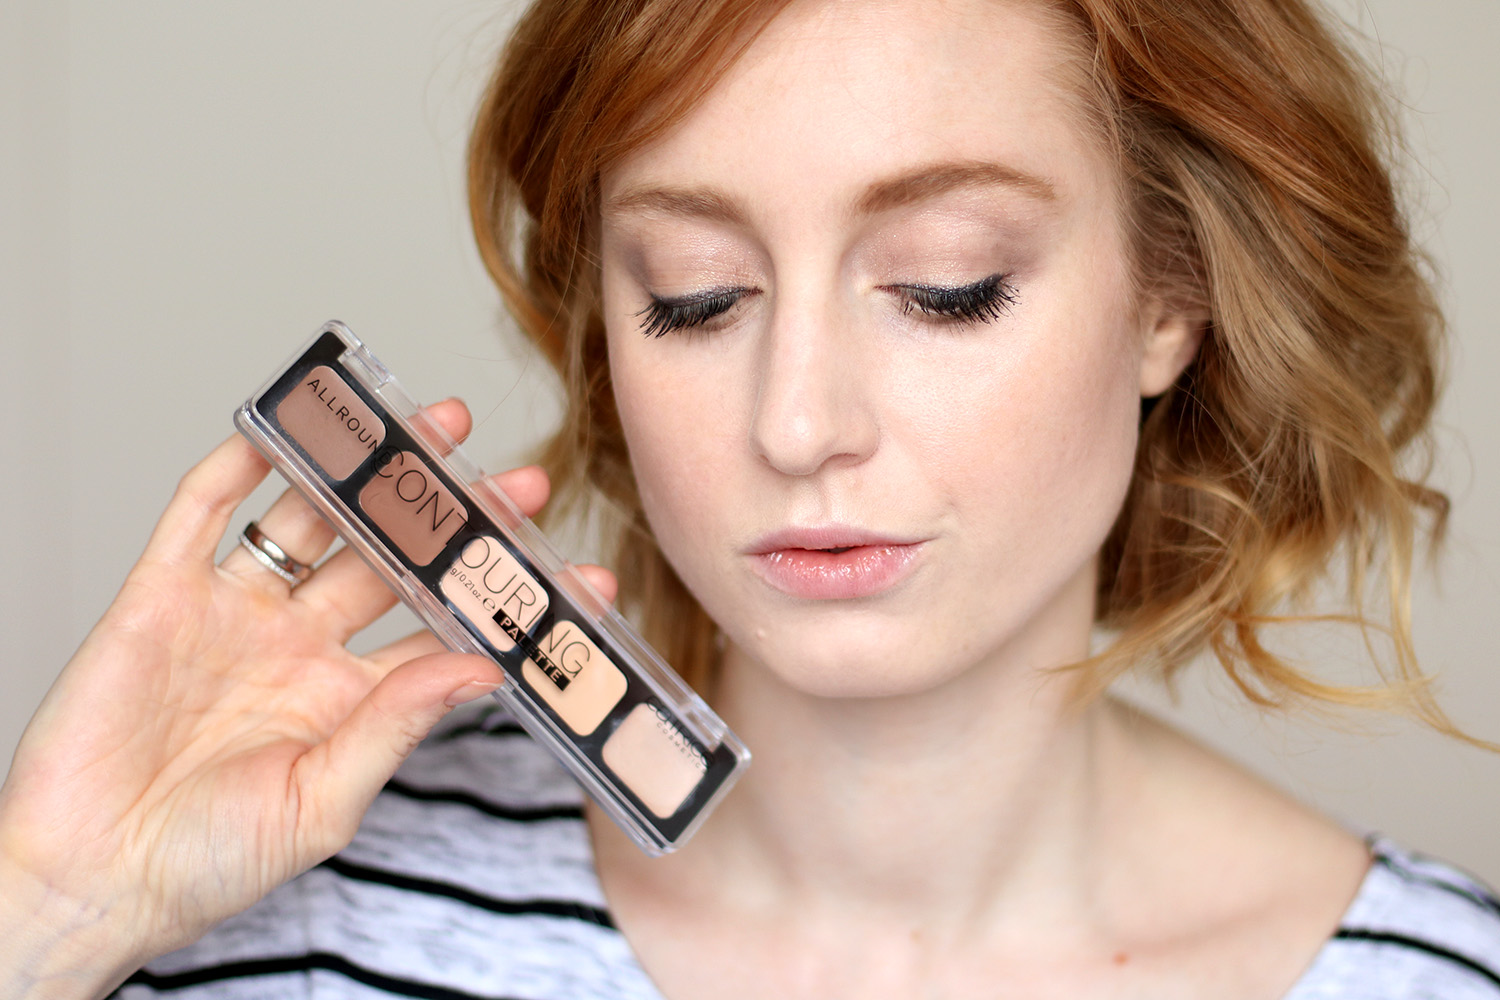 Palette, Conturing Tipps, Kontur setzten, Kontur, CATRICE ALLROUND Contouring Palette, Review, Test, Swatch, Tagesmakeup, Alltagsmakeup, helle Haut, rote Haare, Makeup Tutorial, Monday's Makeup, Beautytipps, Beauty Blog, Berlin, Influencer, Advance Your Style, advanceyourstyle